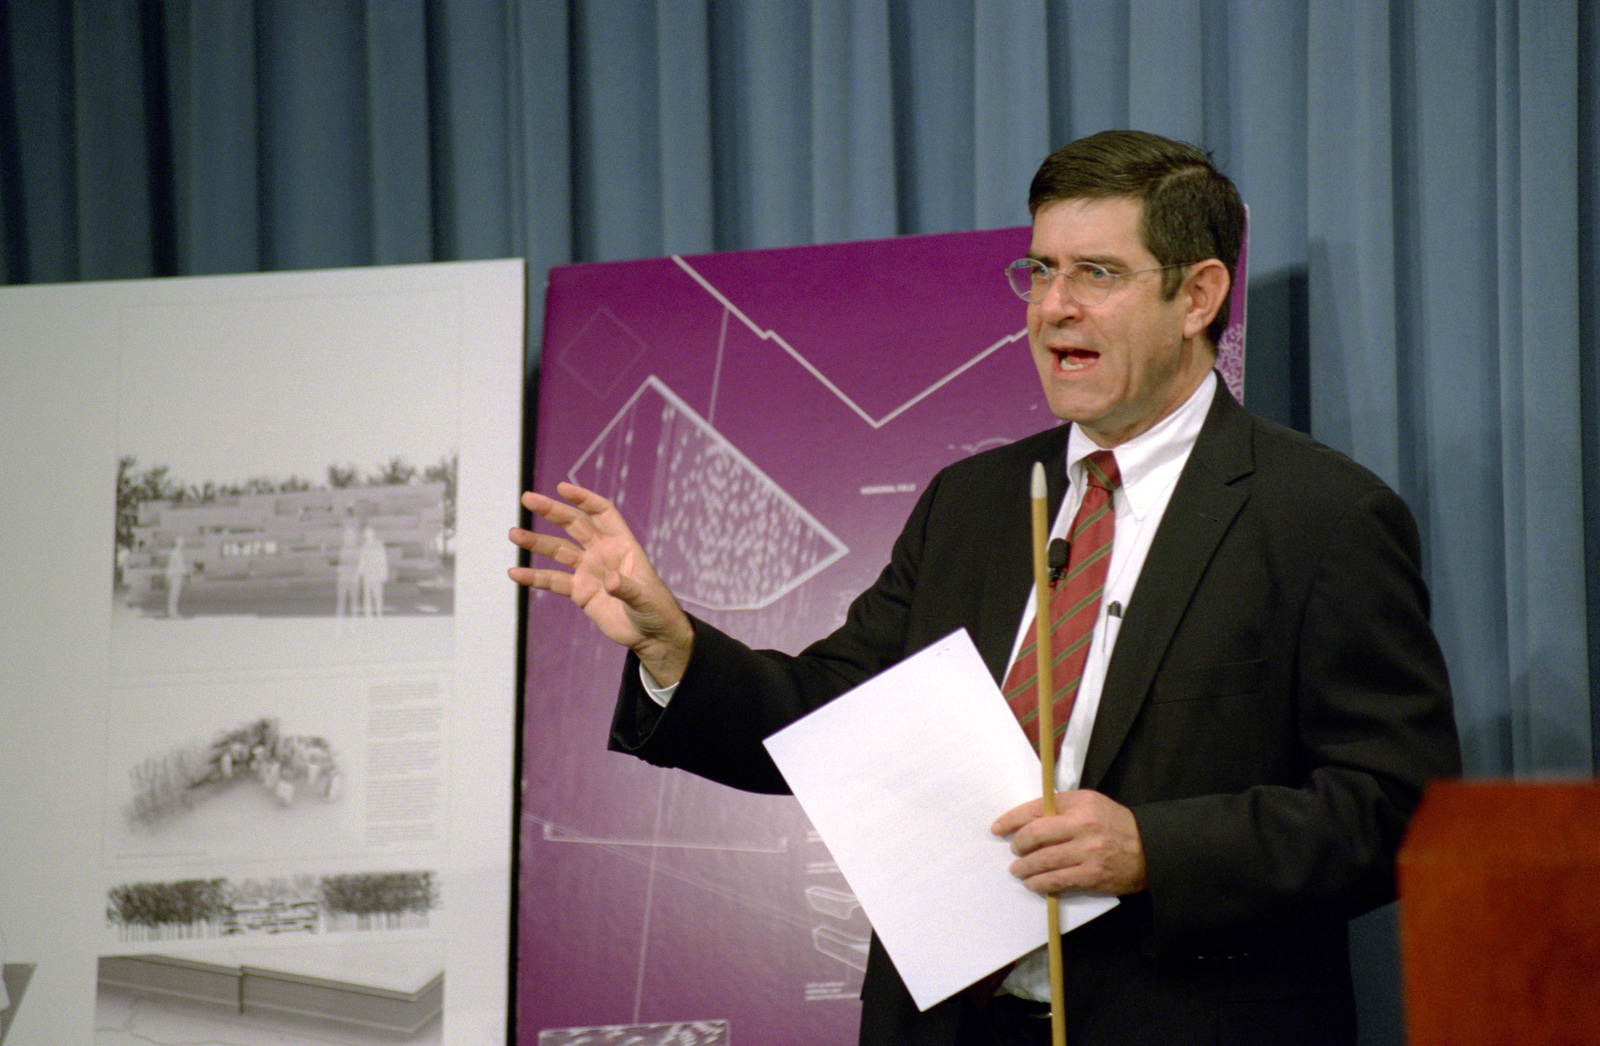 Terry Riley, the New York Museum of Modern Art CHIEF Curator of Design and Architecture, shows the drawings of the finalists of the Pentagon Memorial Design Competition at the Pentagon, Washington, D.C., on Oct. 17, 2005. OSD Package No. 00670 (DOD PHOTO by Robert D. Ward) (Released)